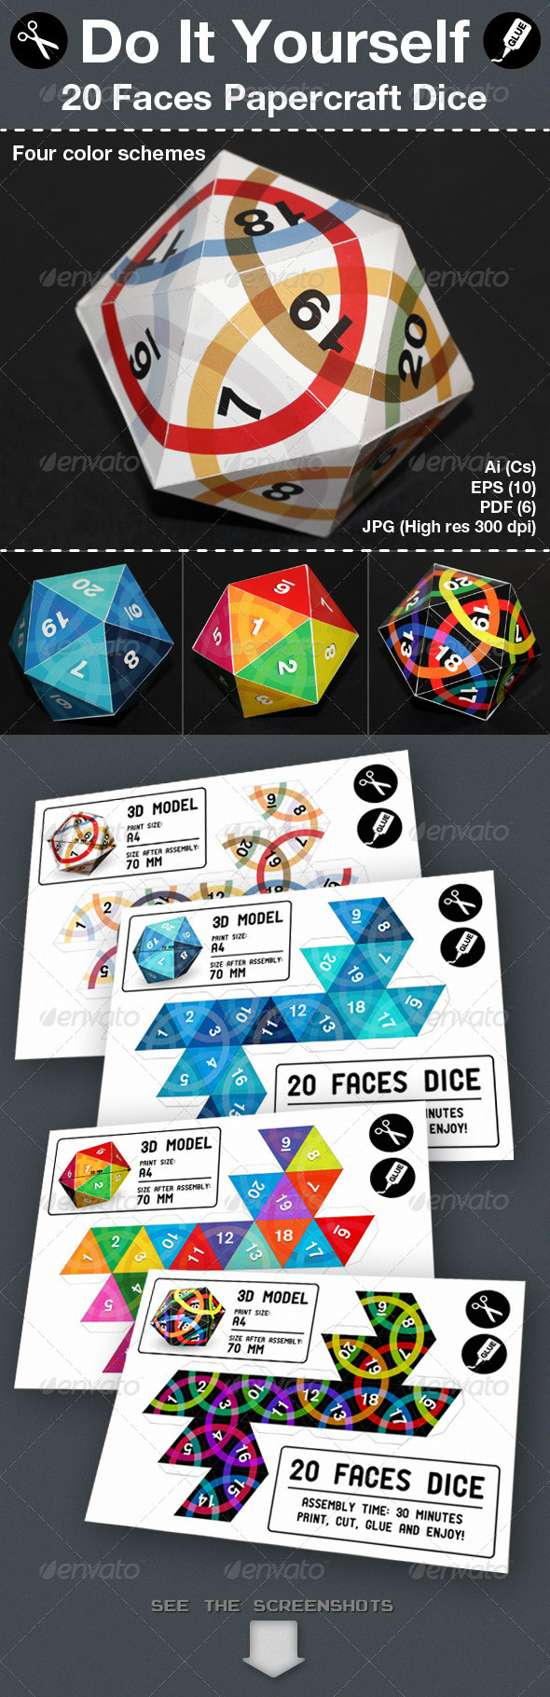 twenty faces packaging template